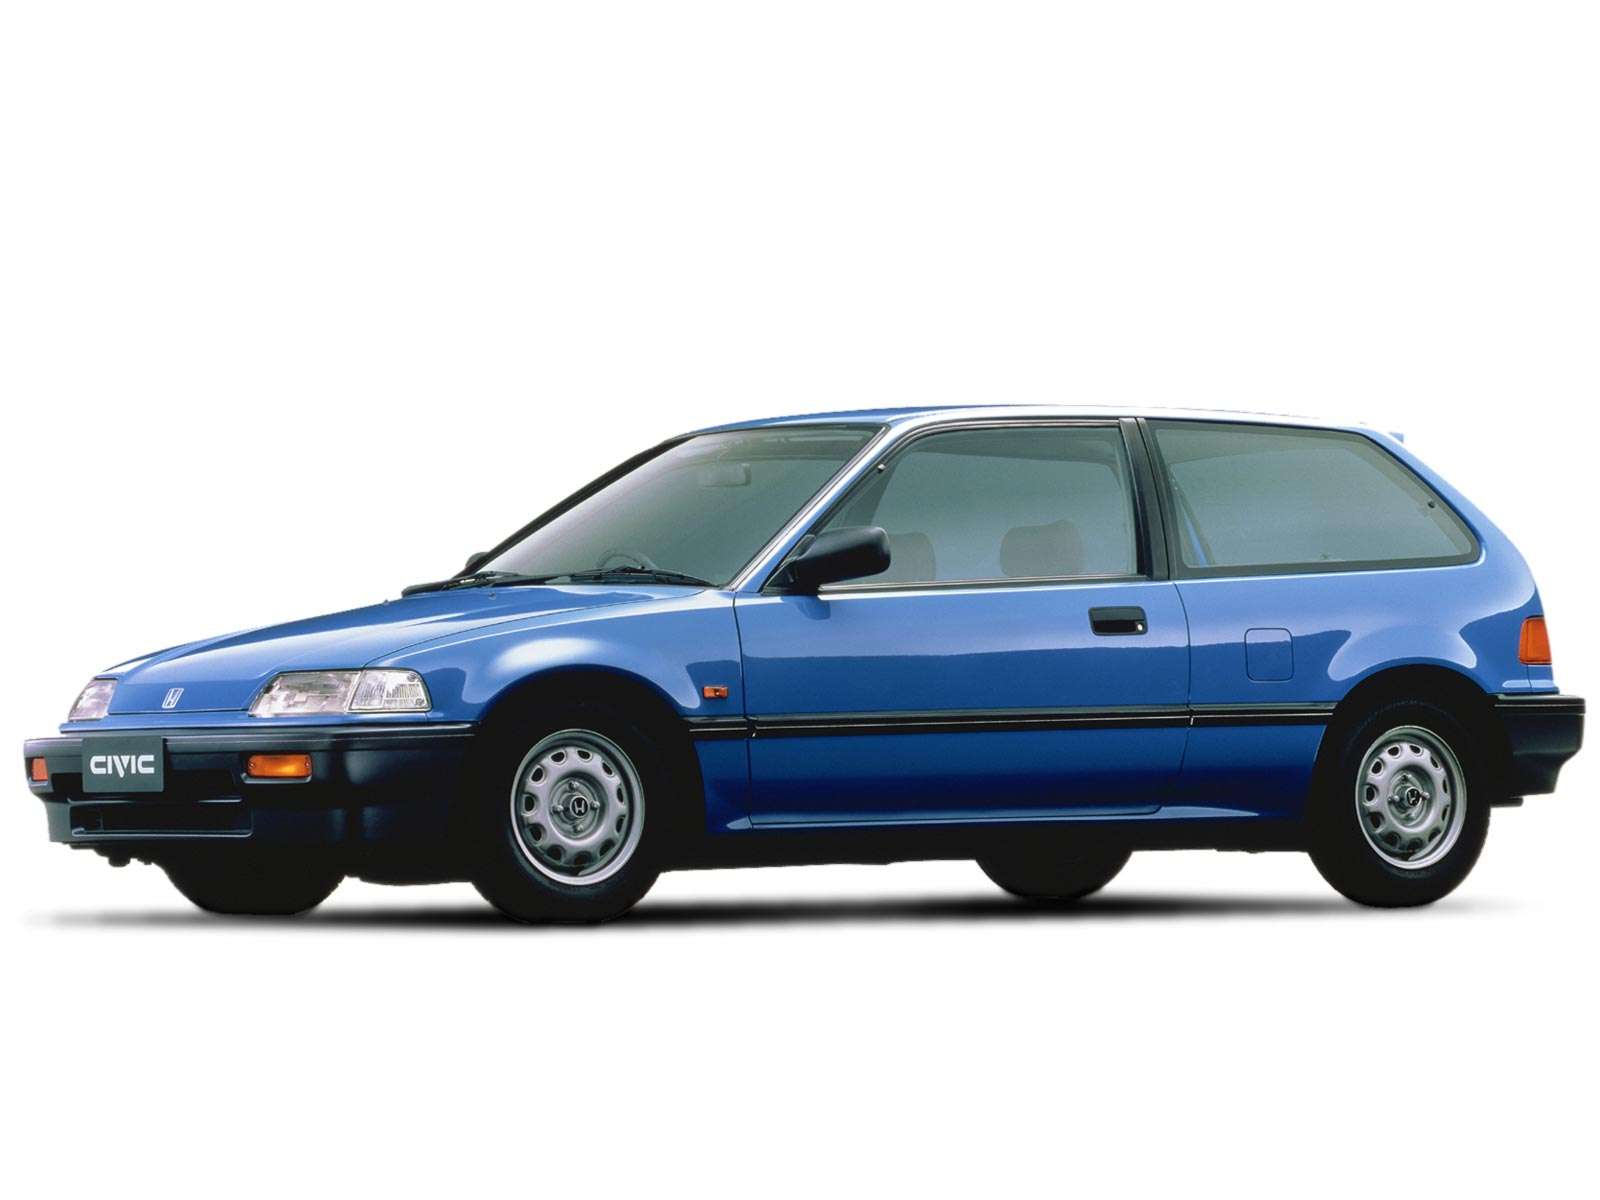 Honda Civic 1.6 1987 photo - 6